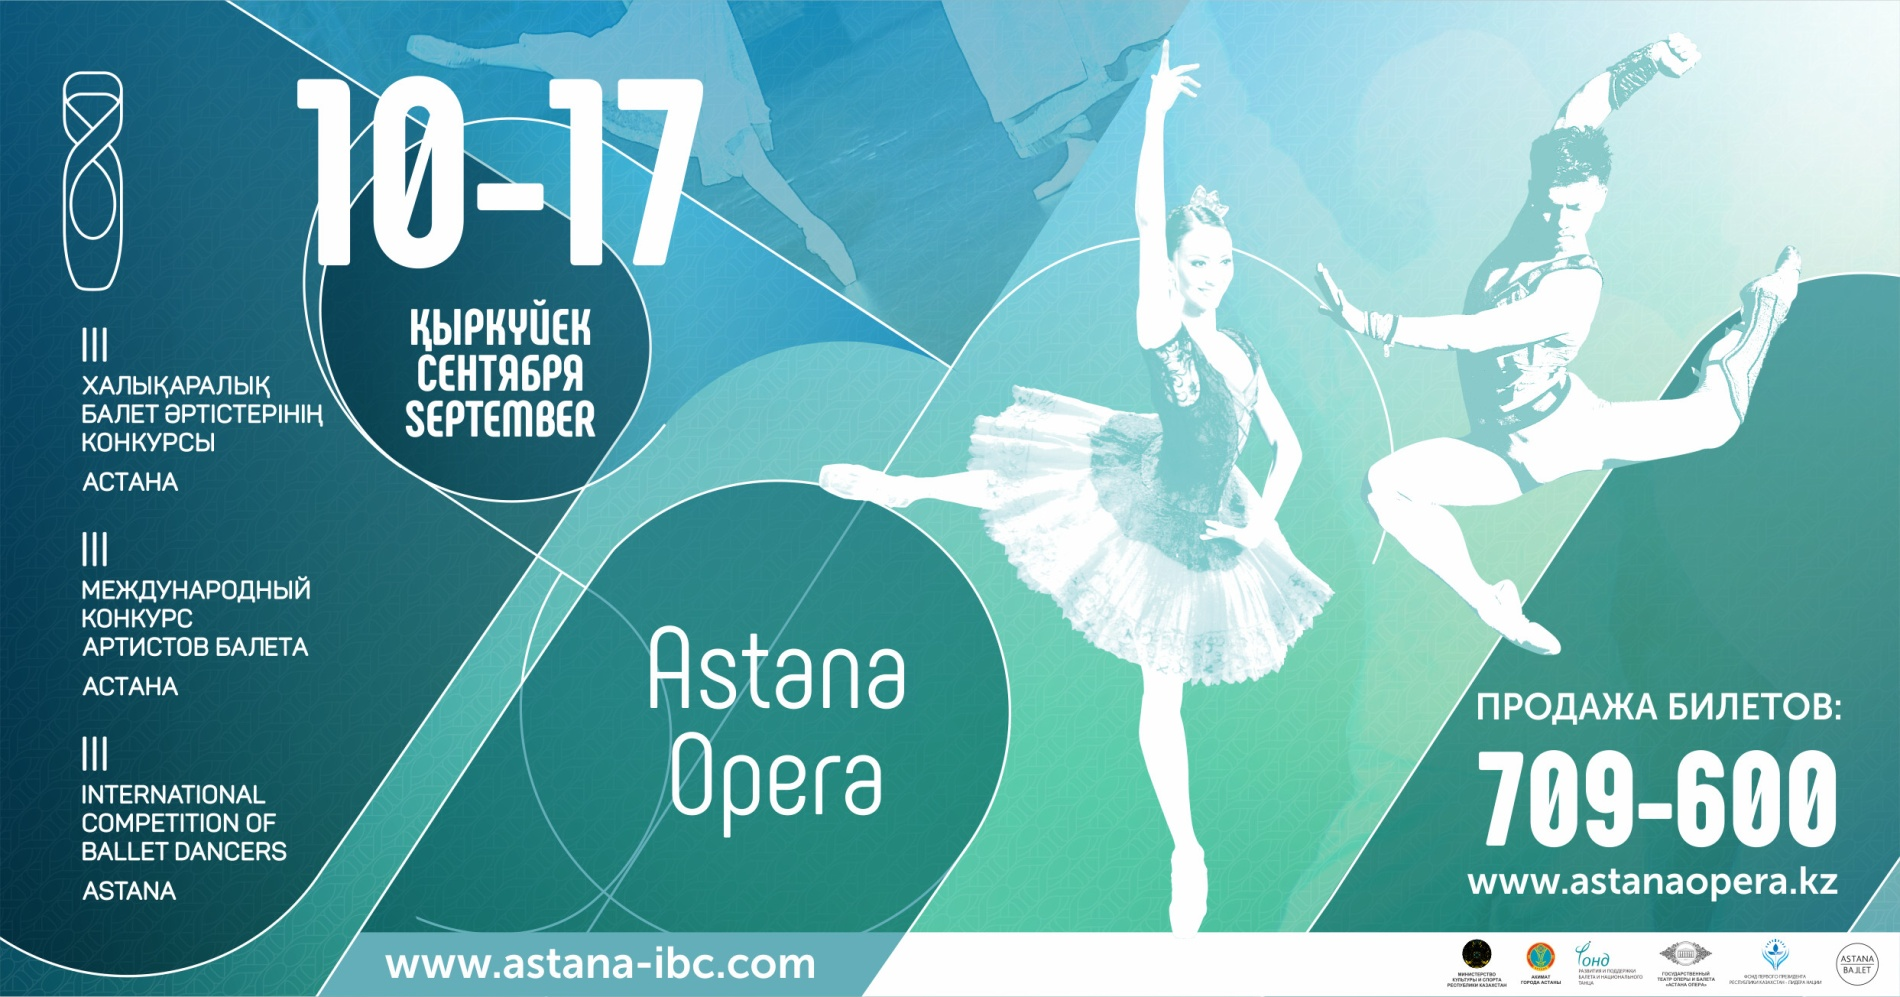 vasily takes a part in international ballet competition in astana as a member of the jury 001